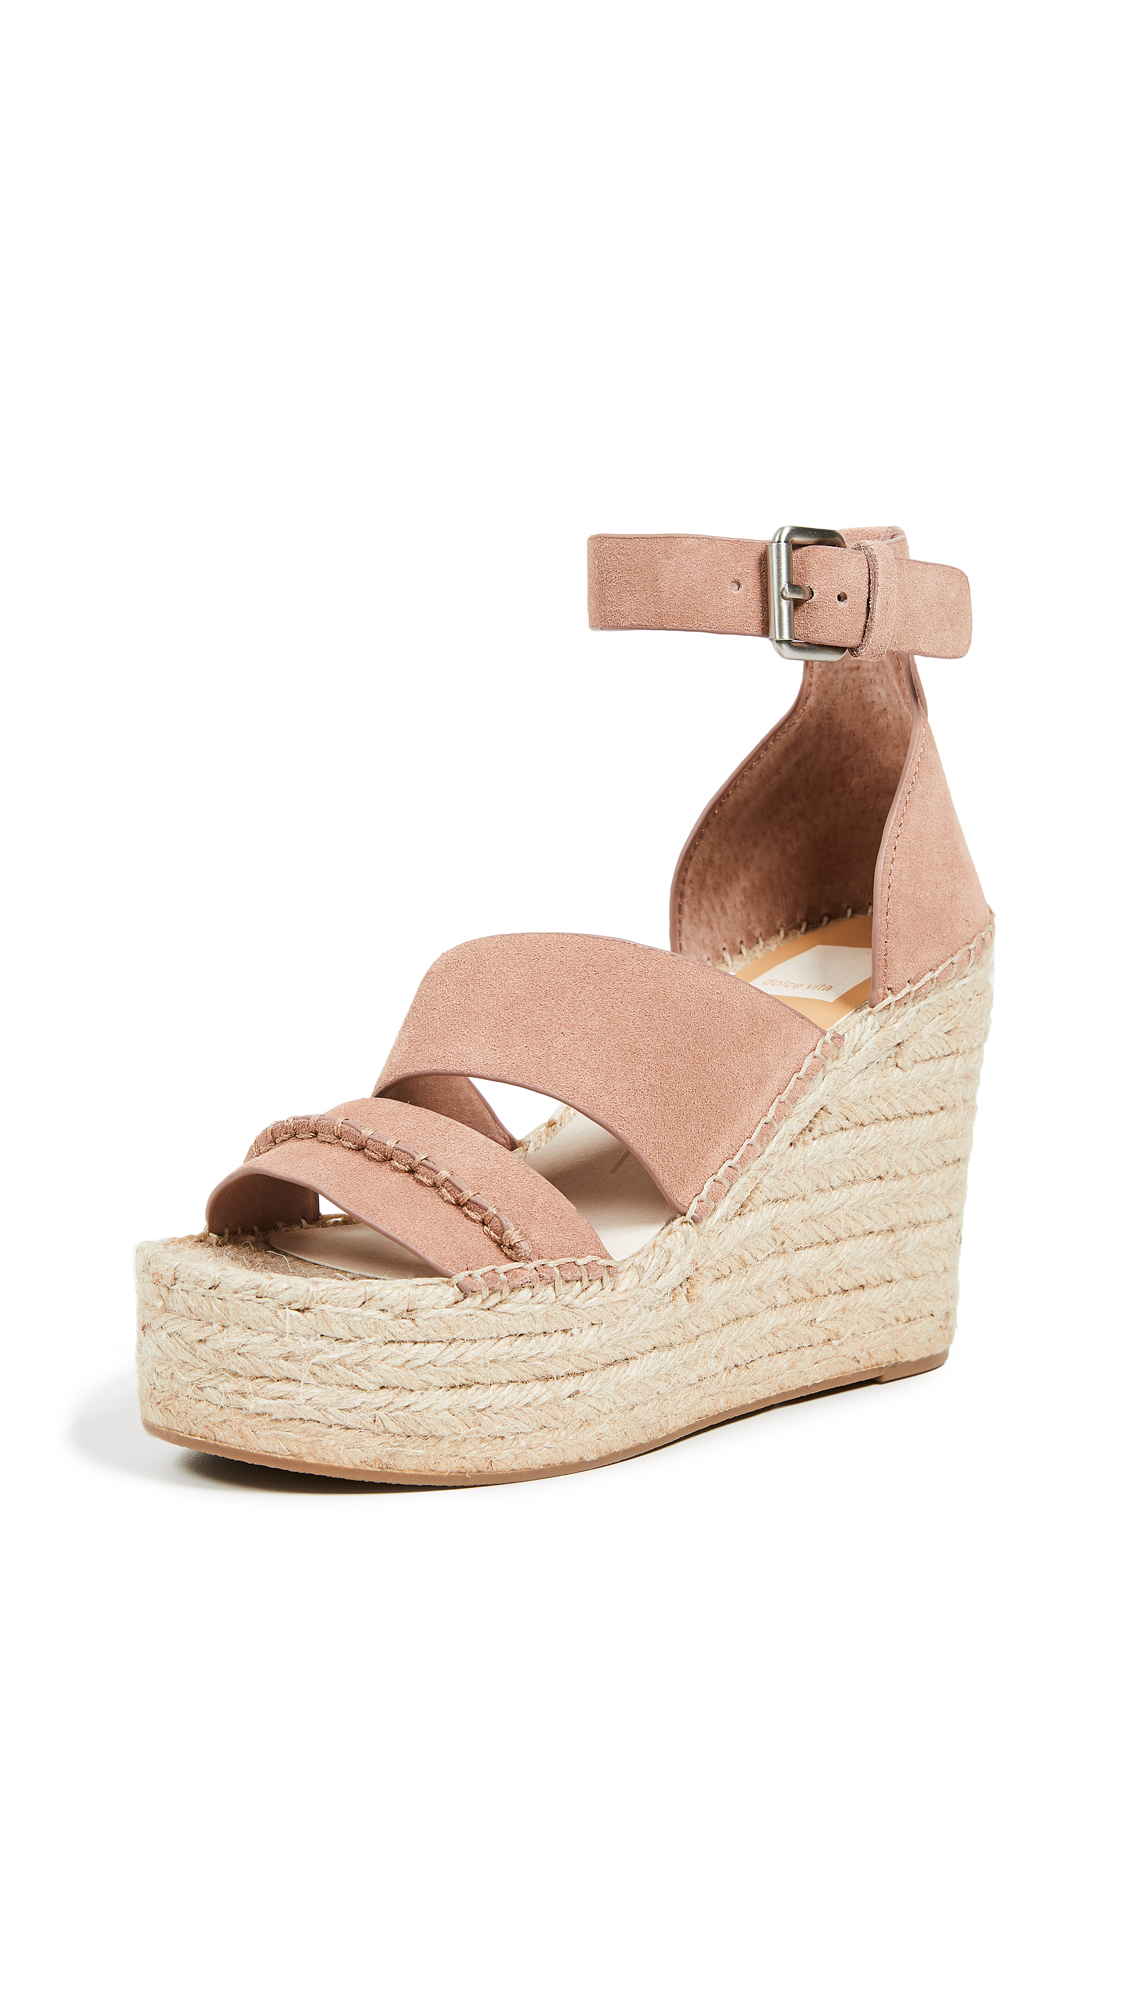 Dolce Vita Simi Espadrille Wedges - Clay